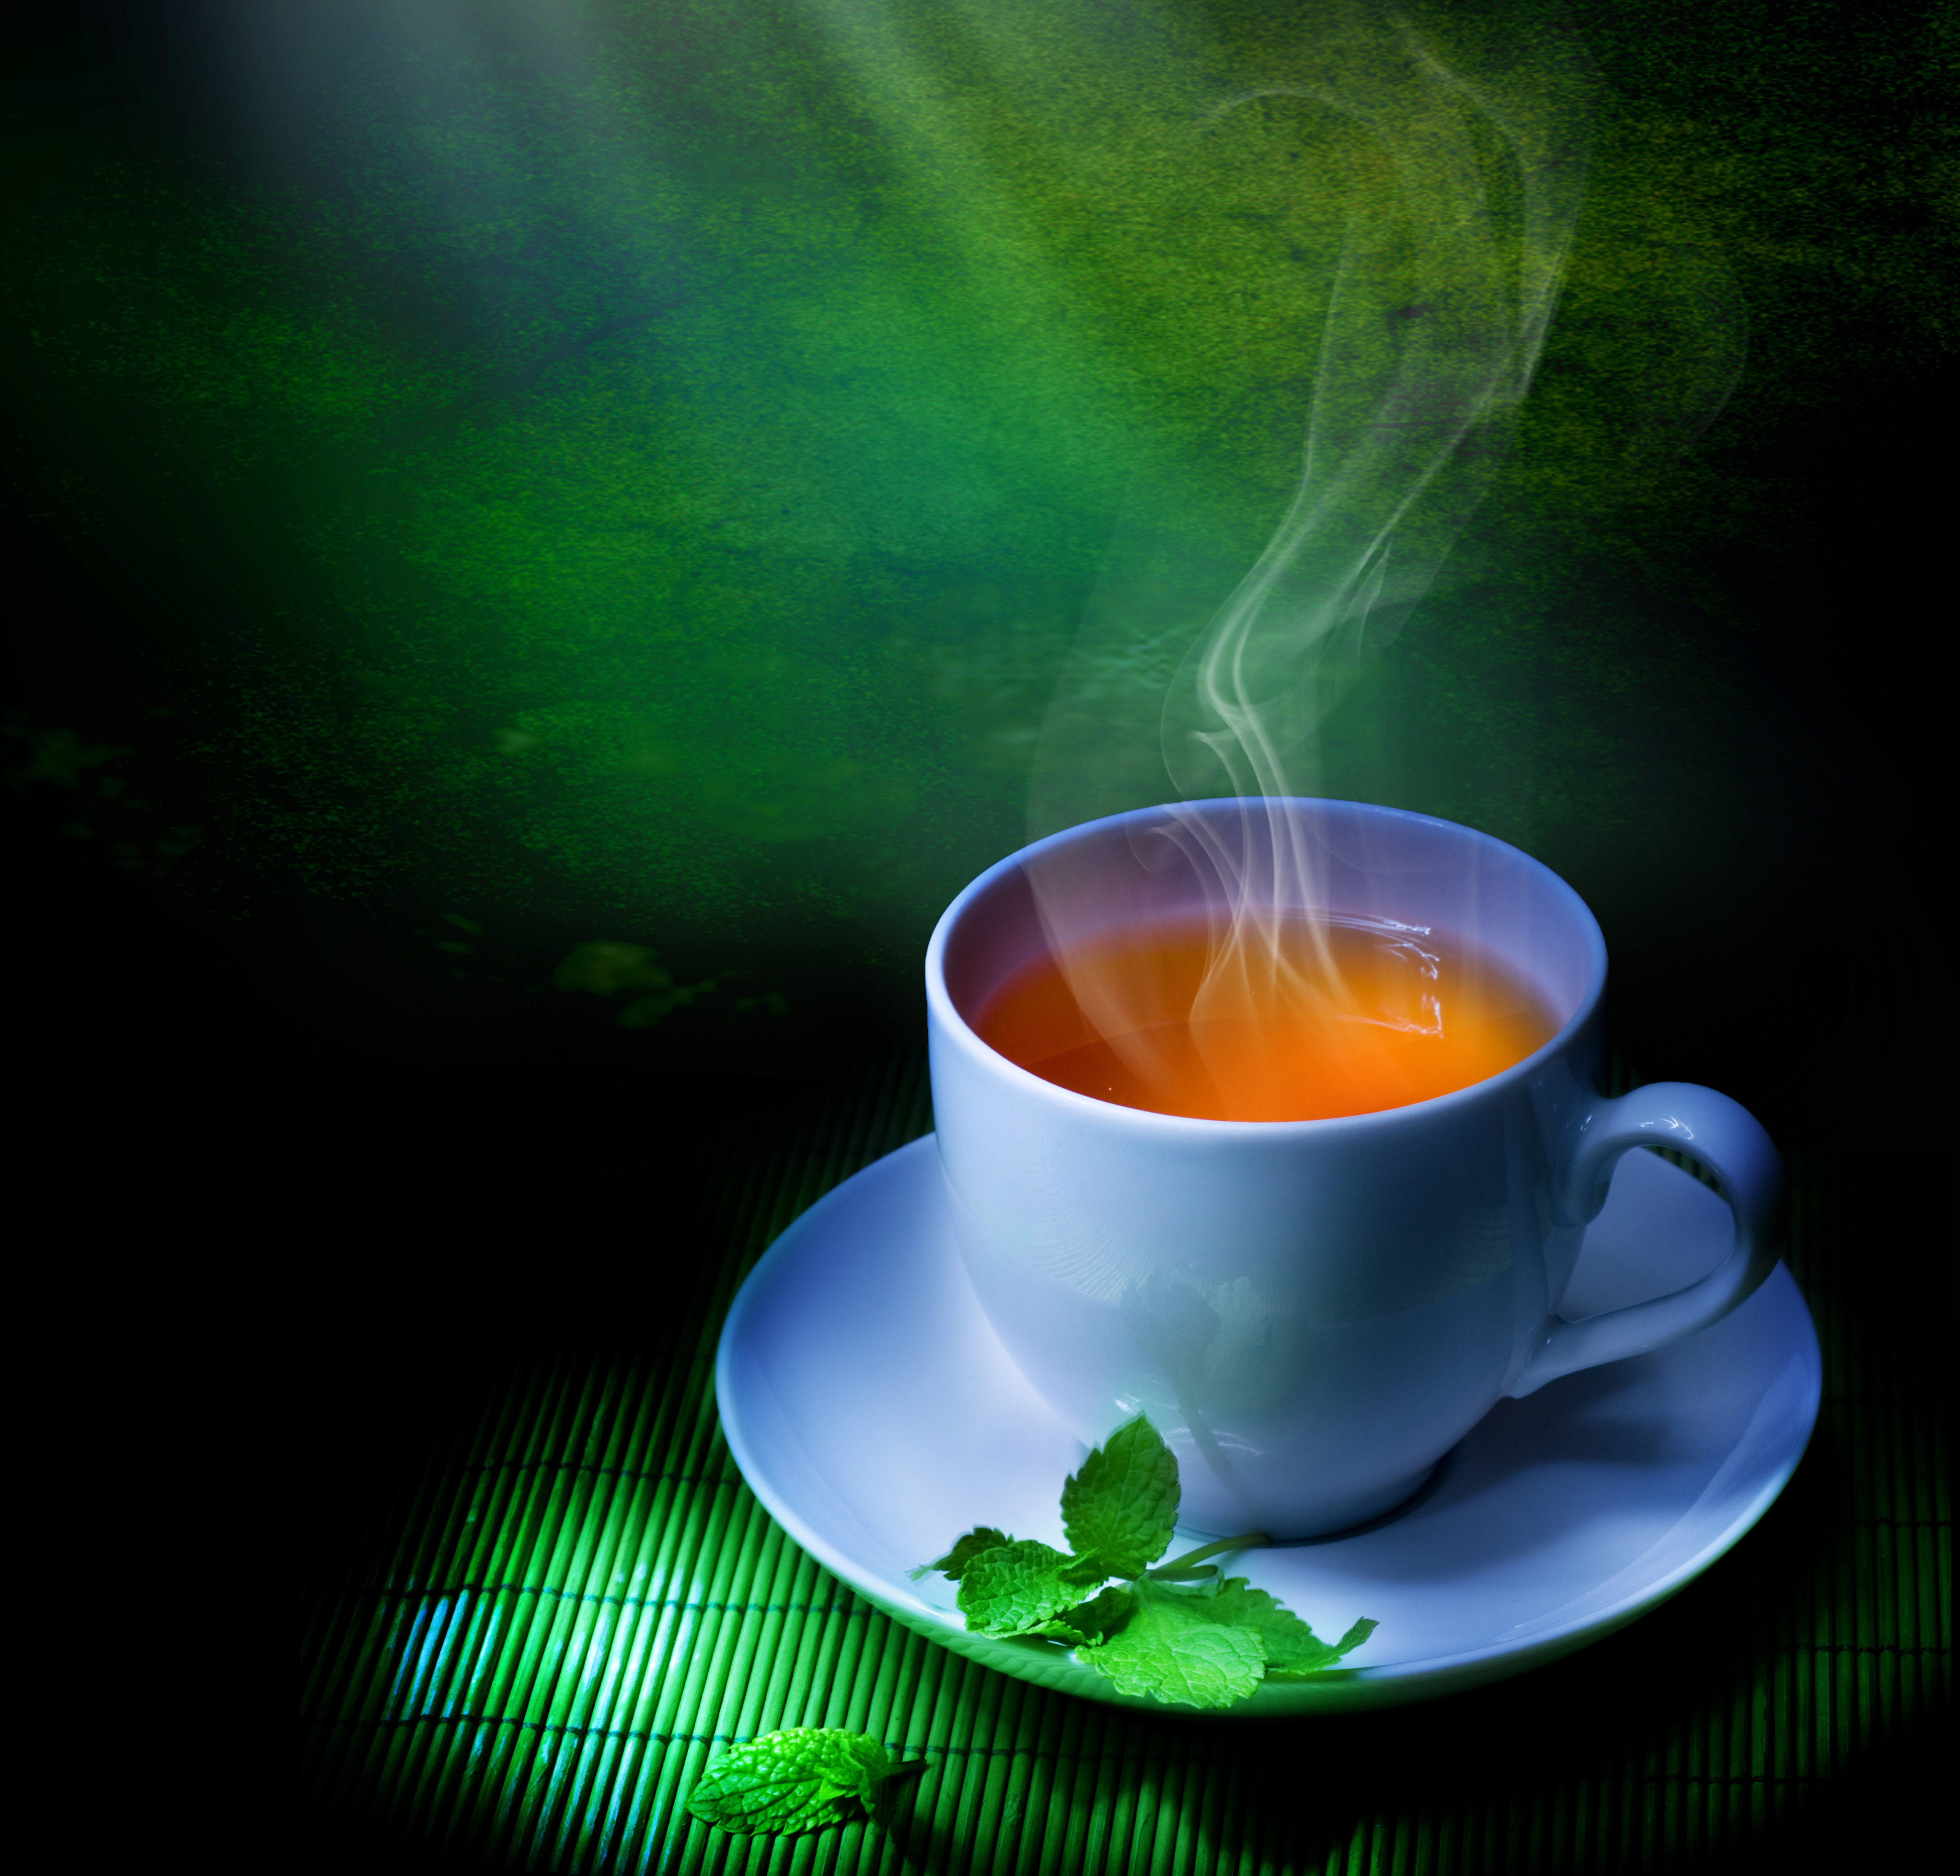 Tea Cup Green Background